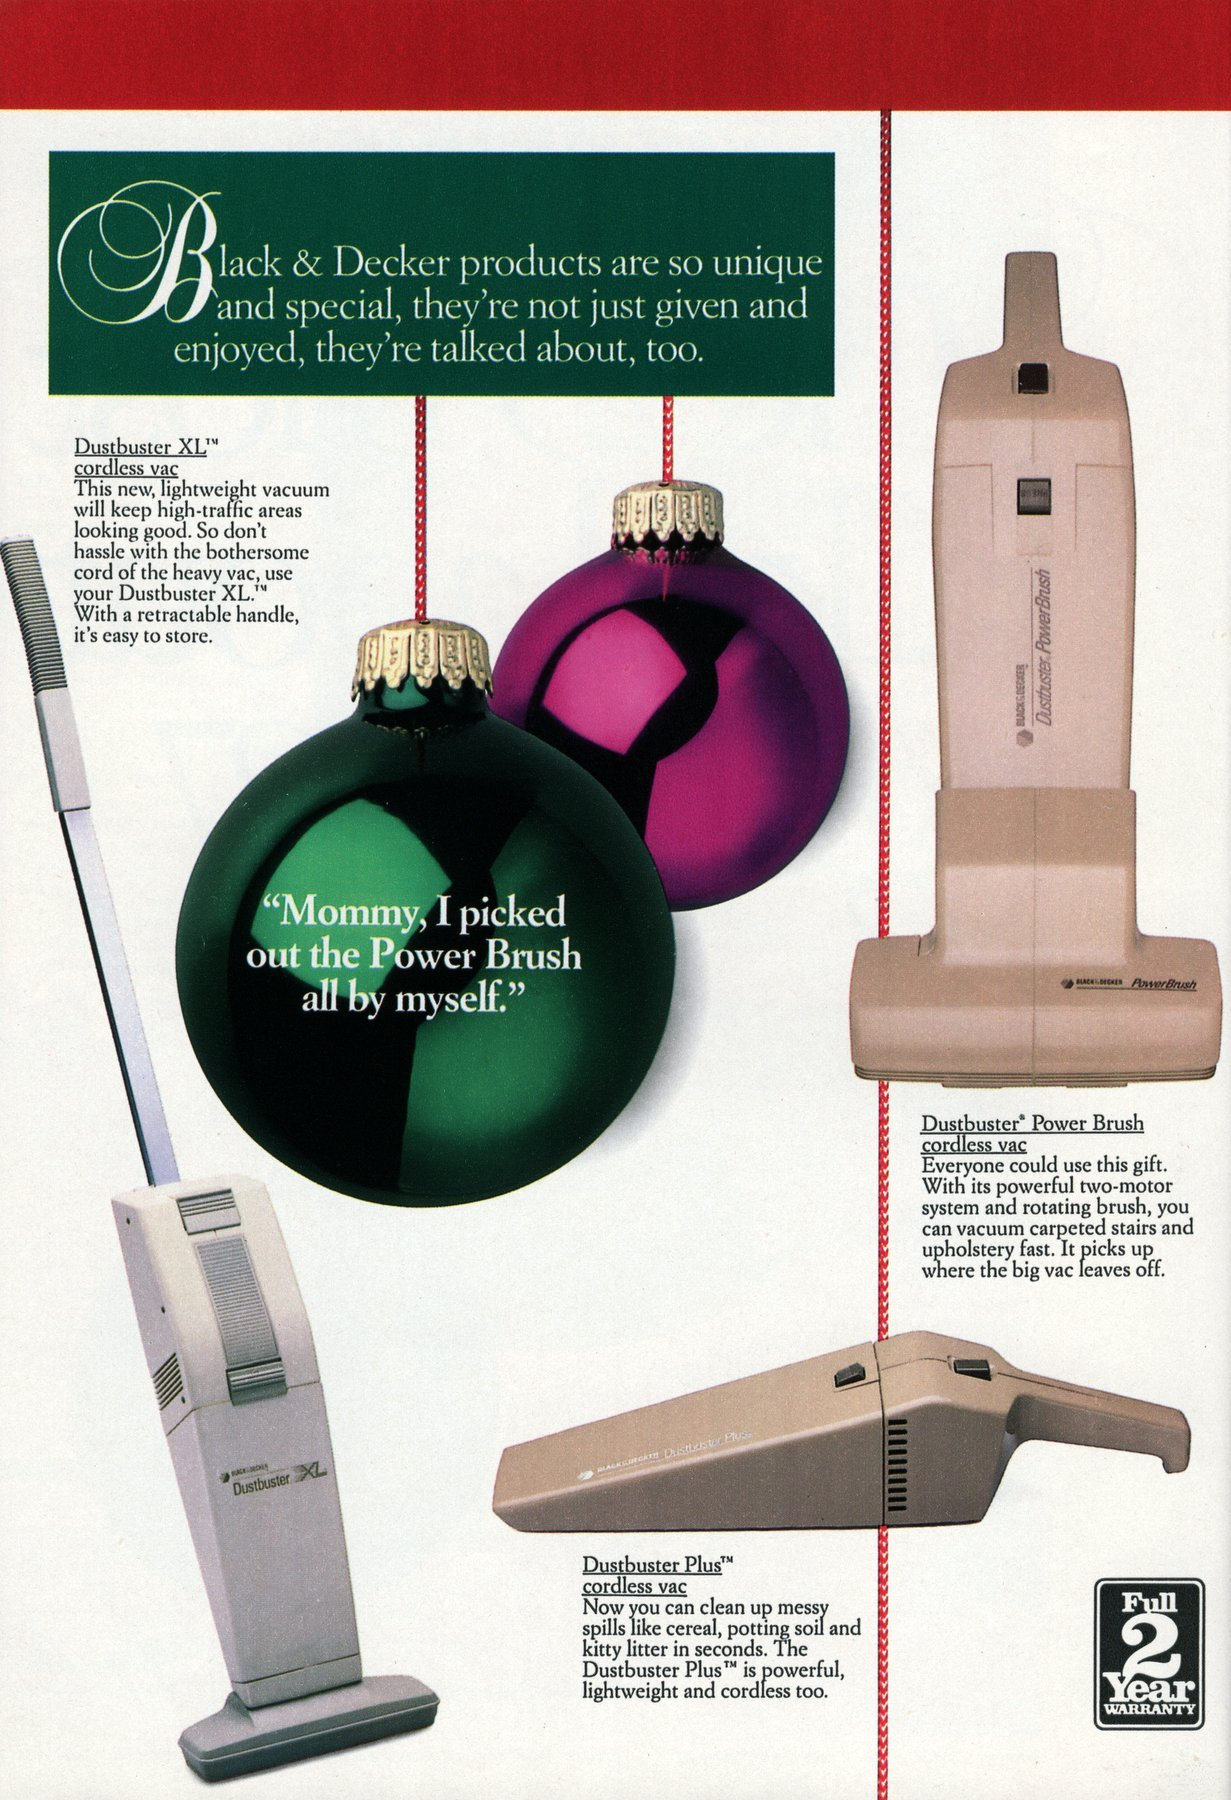 Popular retro Black and Decker electronics and appliances from 1987